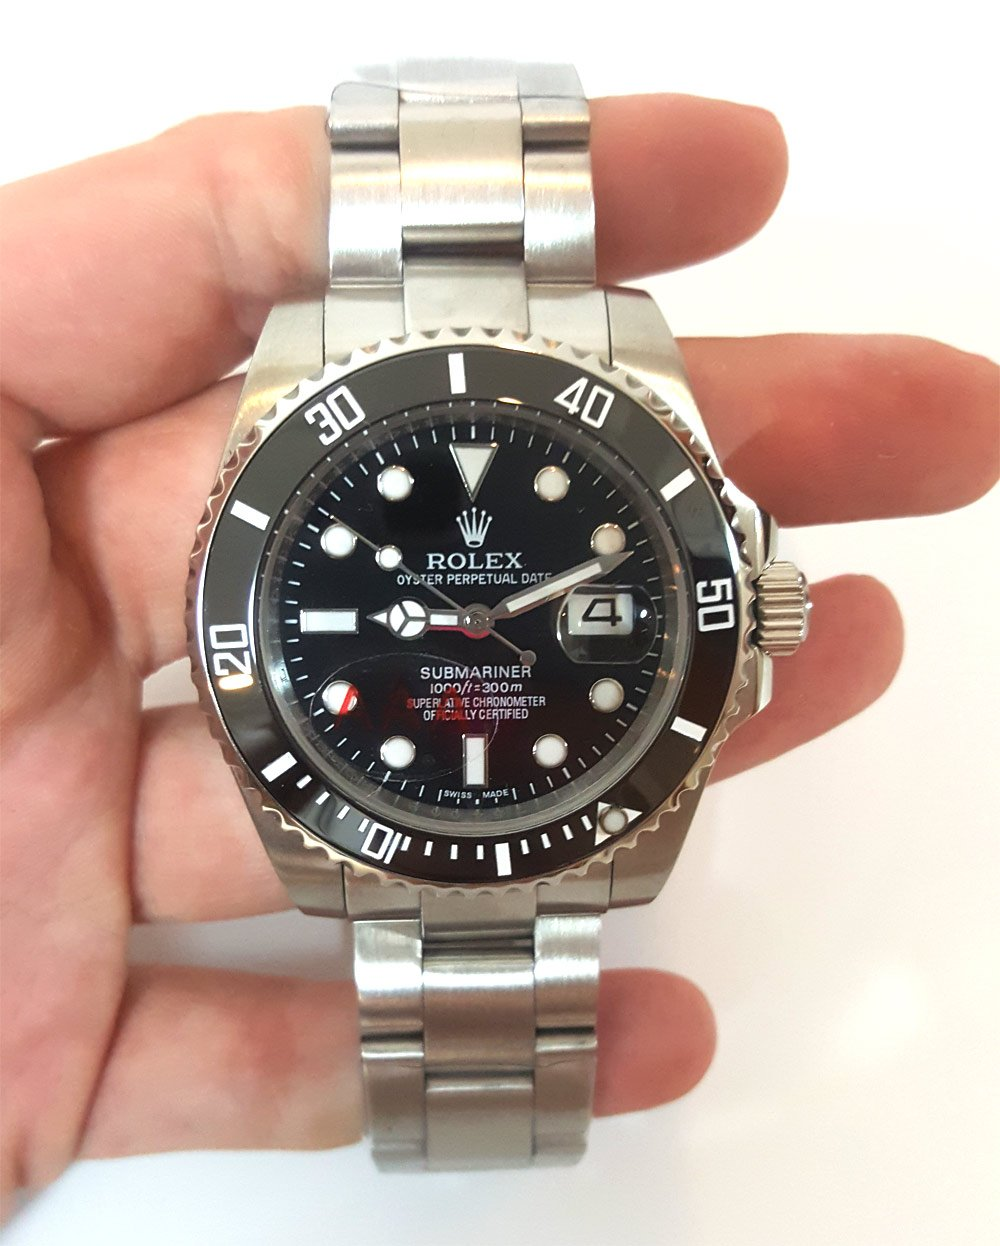 Rolex Submariner Black Dial 116610ln Best Place To Buy Replica Rolex Watches Perfect Rolex